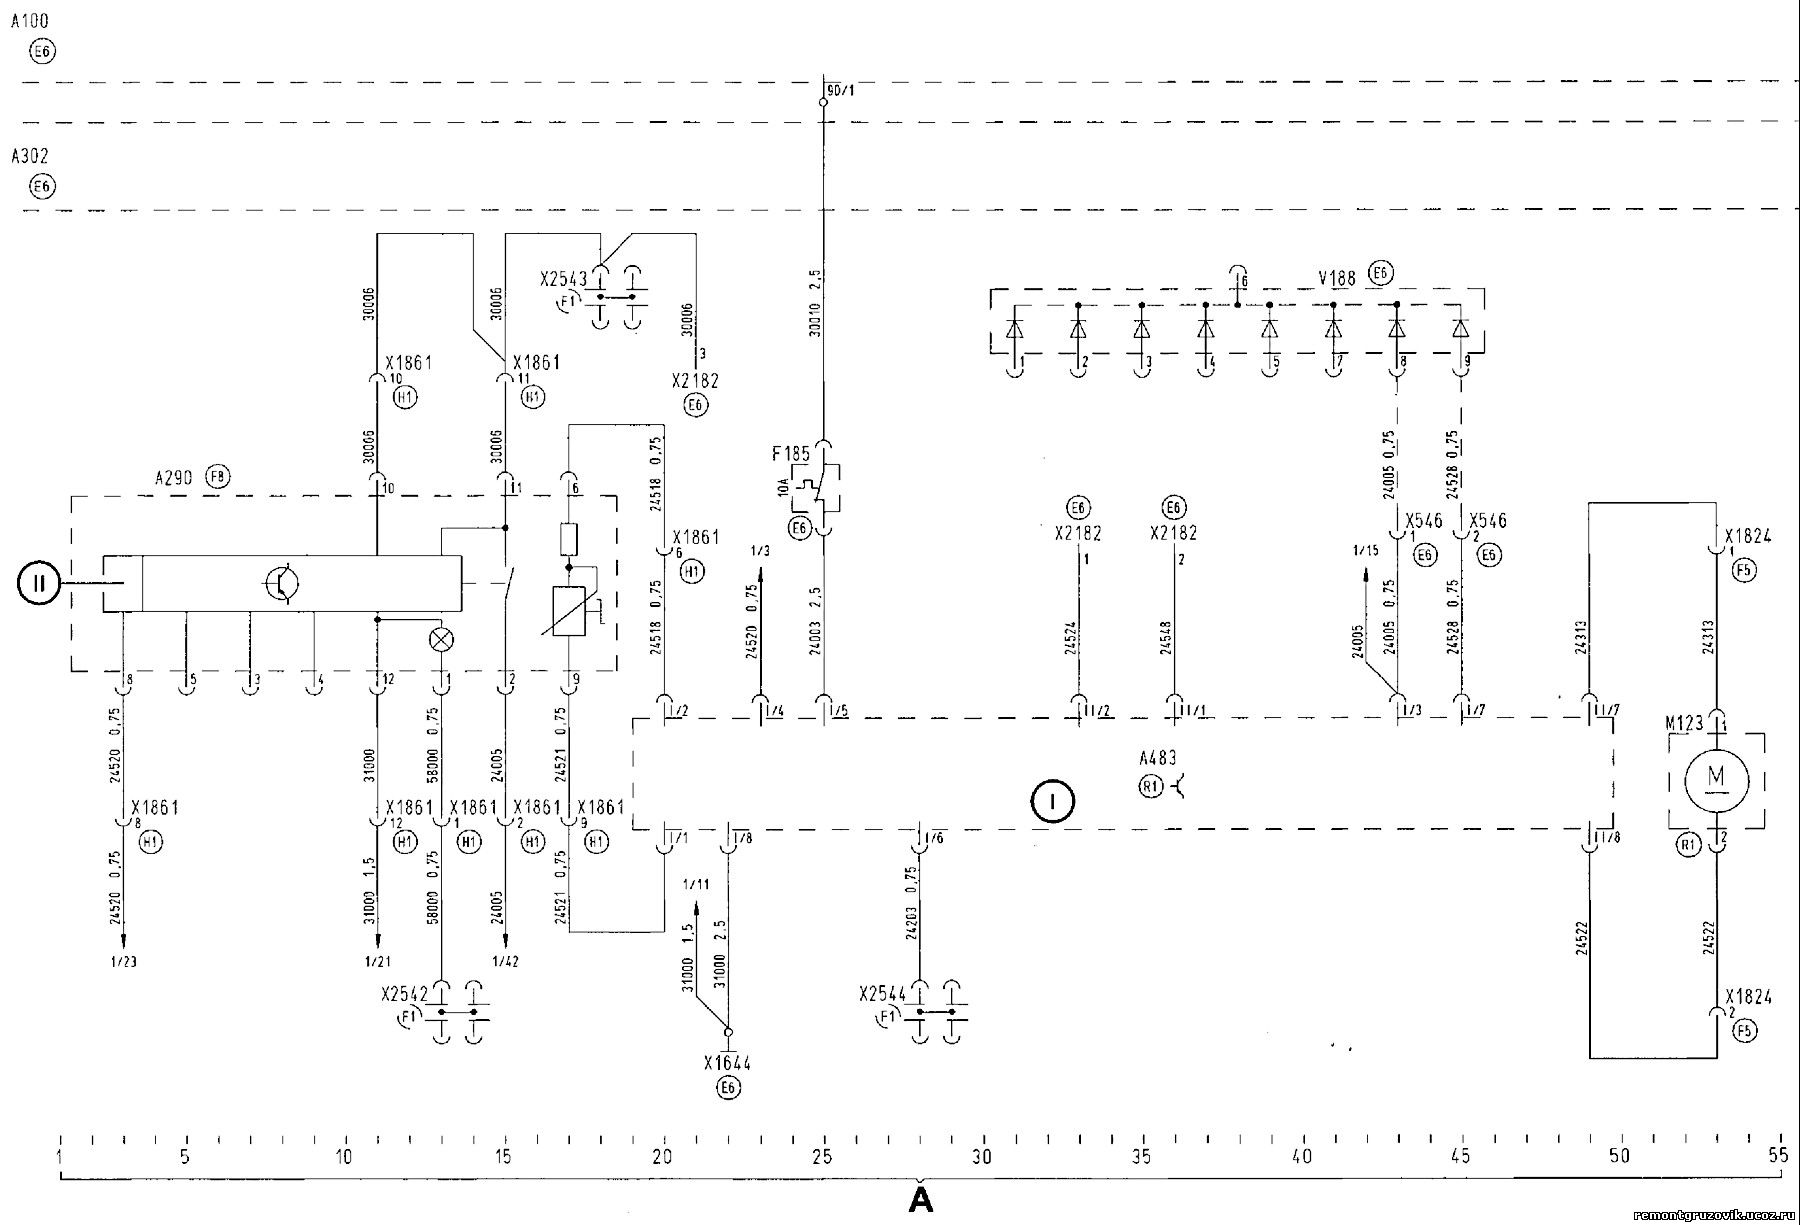 Thermo King Truck Wiring Diagrams also  together with Thermo King Full Models Service Manual B further  furthermore Thermo King Tripac Apu Wiring Diagram Gooddy Org Throughout With And For. on thermo king wiring schematic diagram